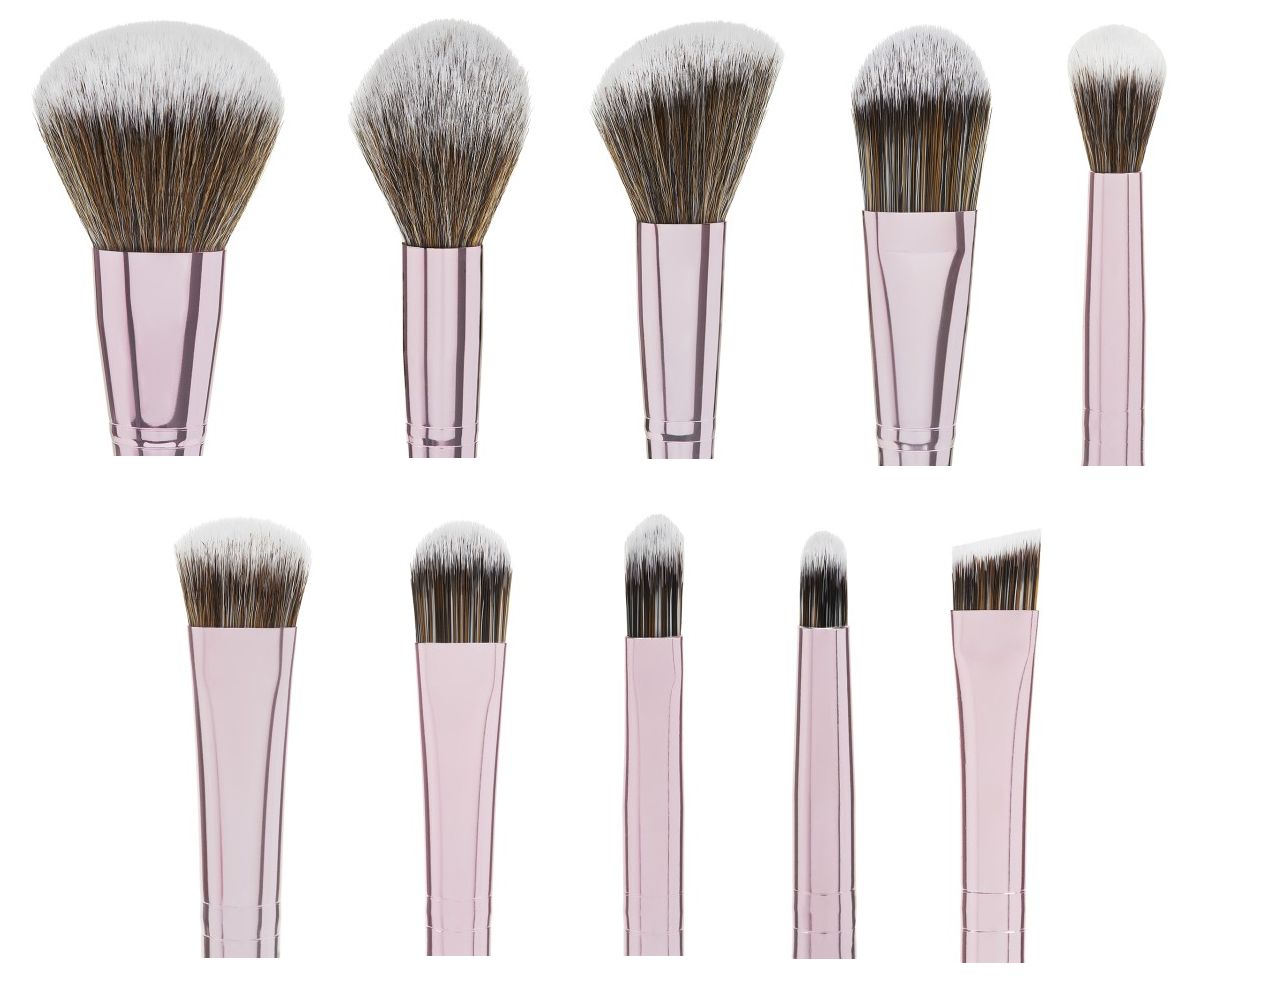 New Cosmetics Vegan Brushes Budget Beauty Blog